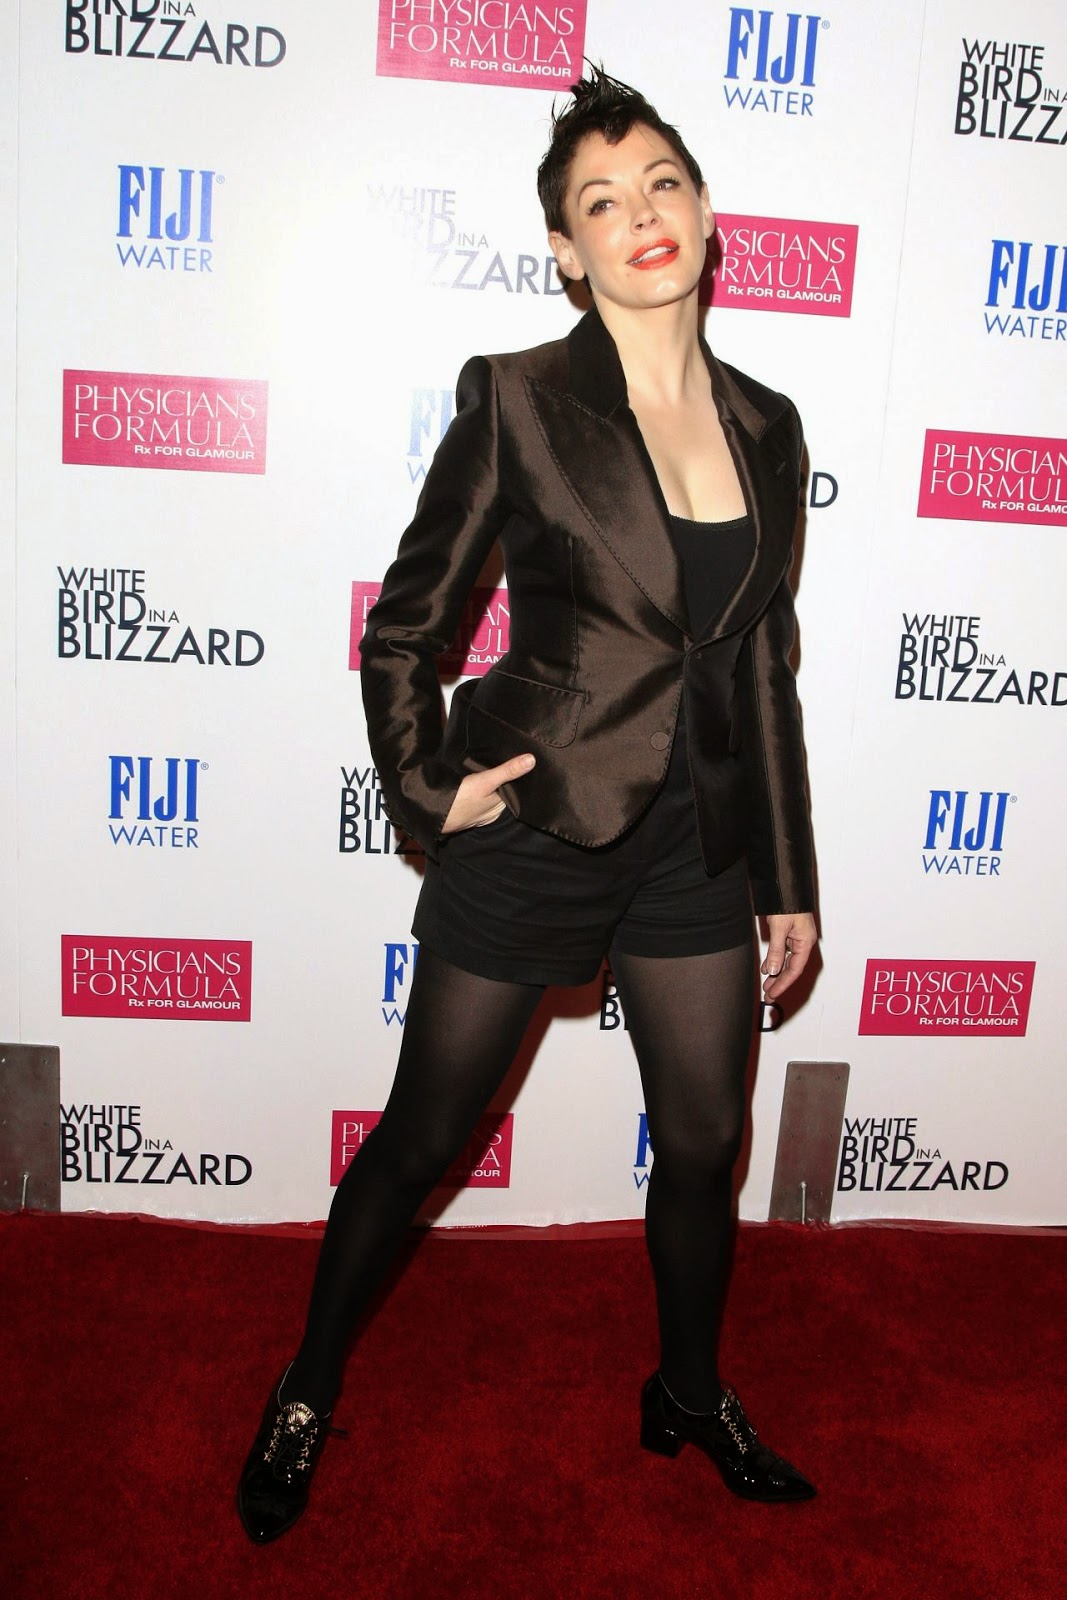 Rose MGowan in an edgy black style at the 'White Bird in a Blizzard' LA premiere